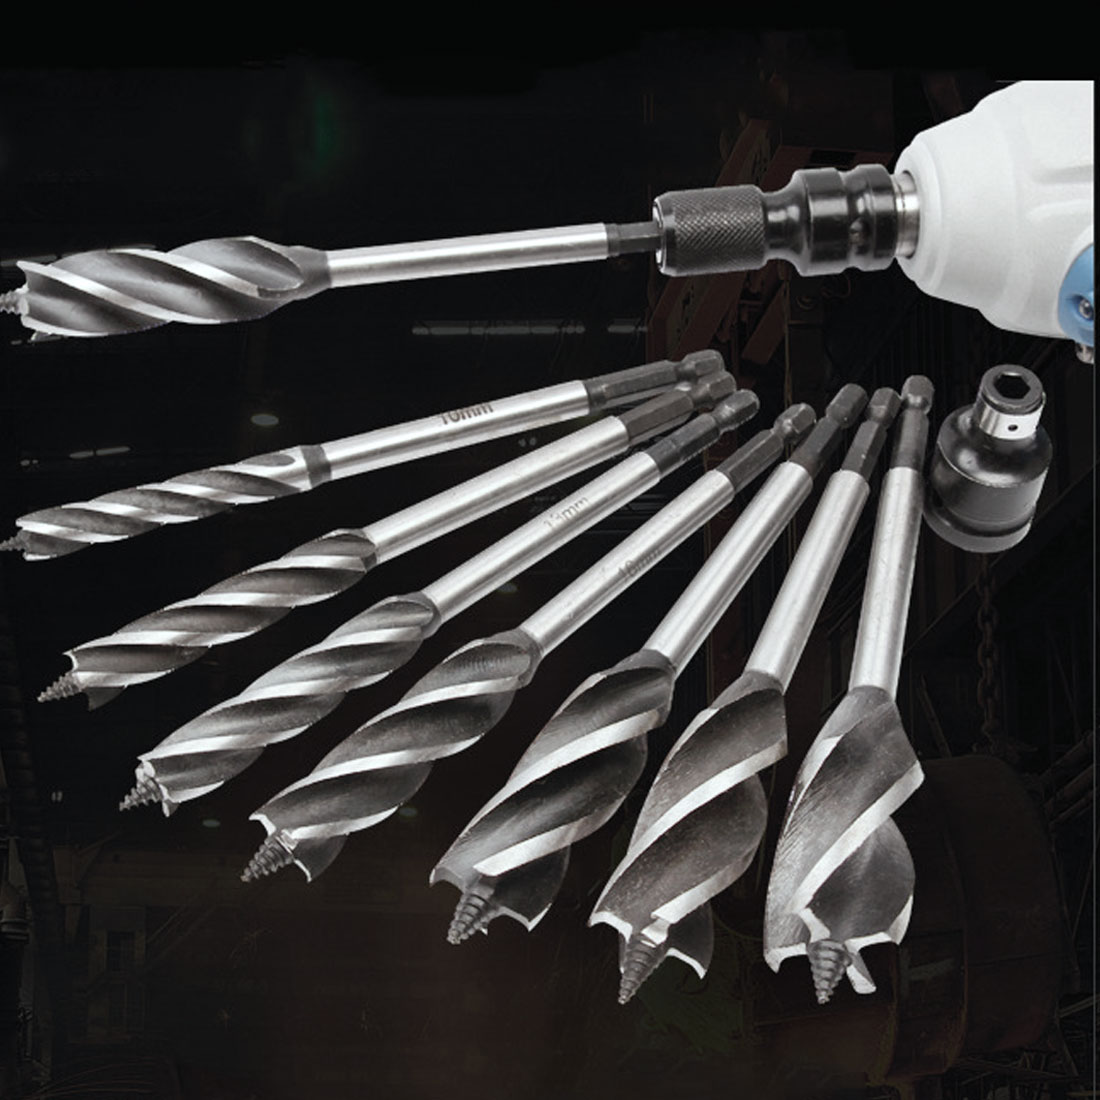 Fast Cut Auger 1pc 10-25mm Twist Drill Bit Set Wood Carpenter Joiner Tool Drill Bit For Wood Cut Suit For Woodworking